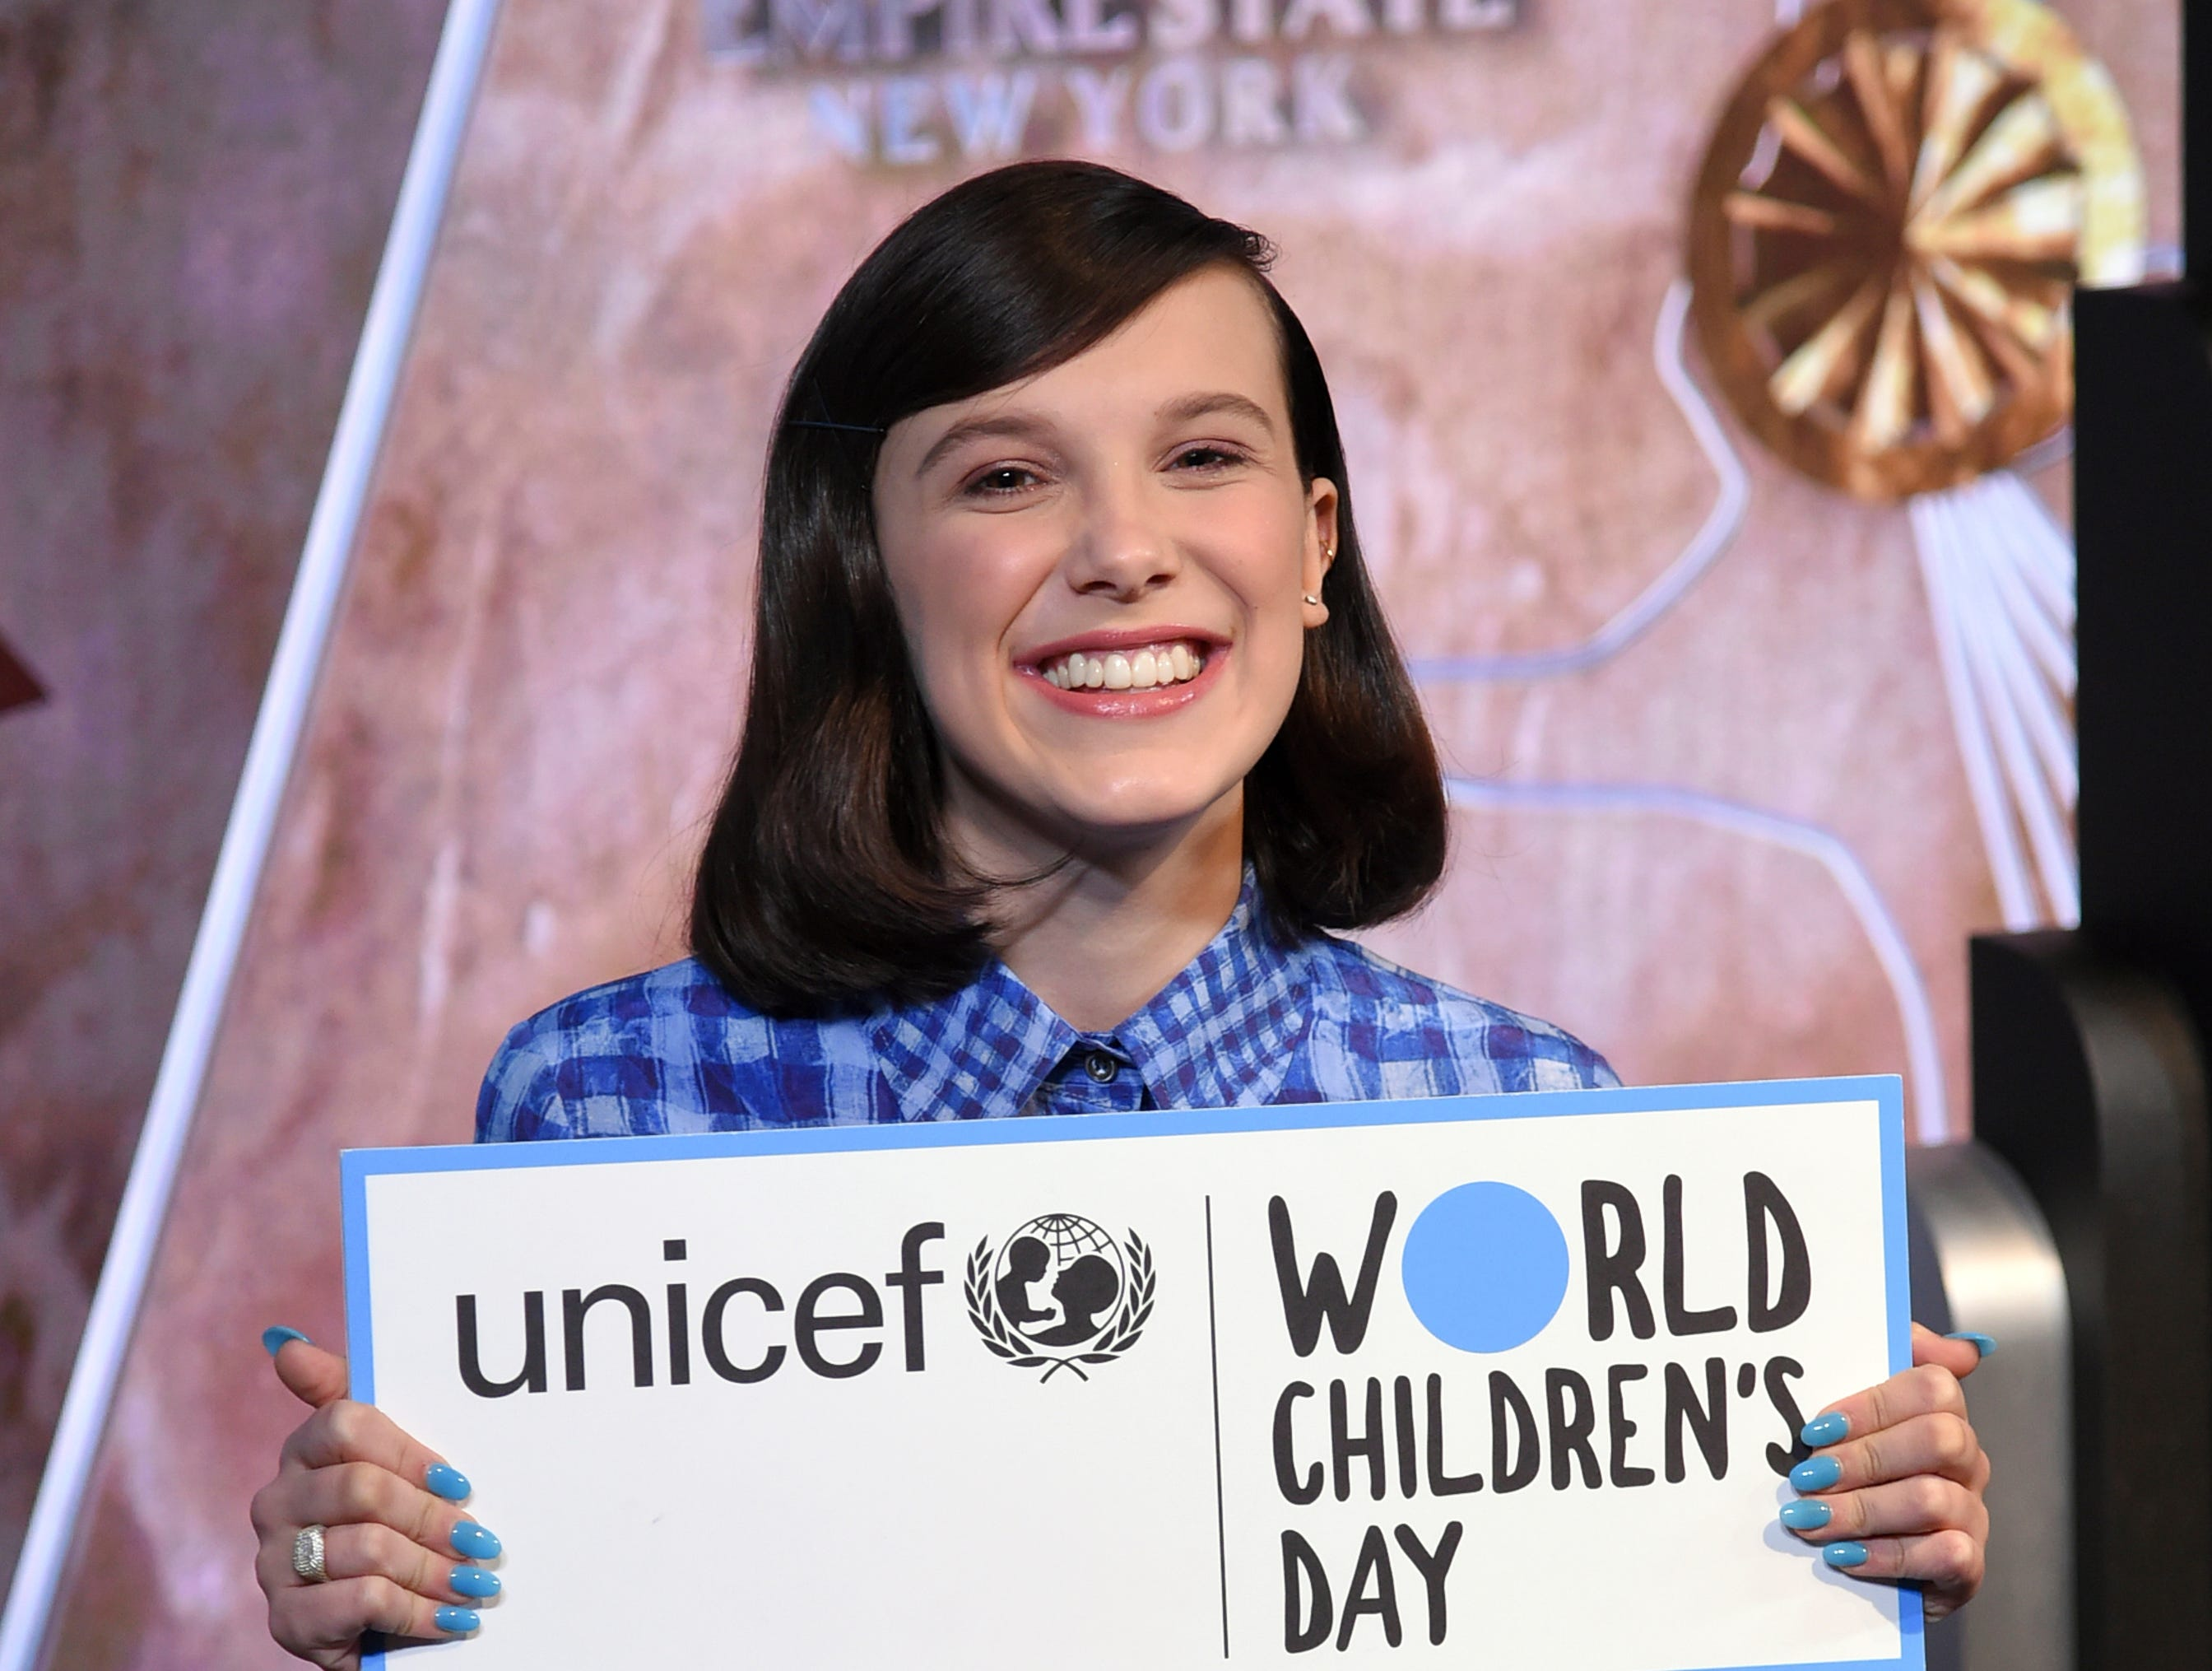 Actress Millie Bobby Brown holds a sign for UNICEF's World Children's Day as she attends a ceremonial lighting of the Empire State Building on Tuesday, Nov. 20, 2018, in New York. (Photo by Evan Agostini/Invision/AP) ORG XMIT: NYEA102